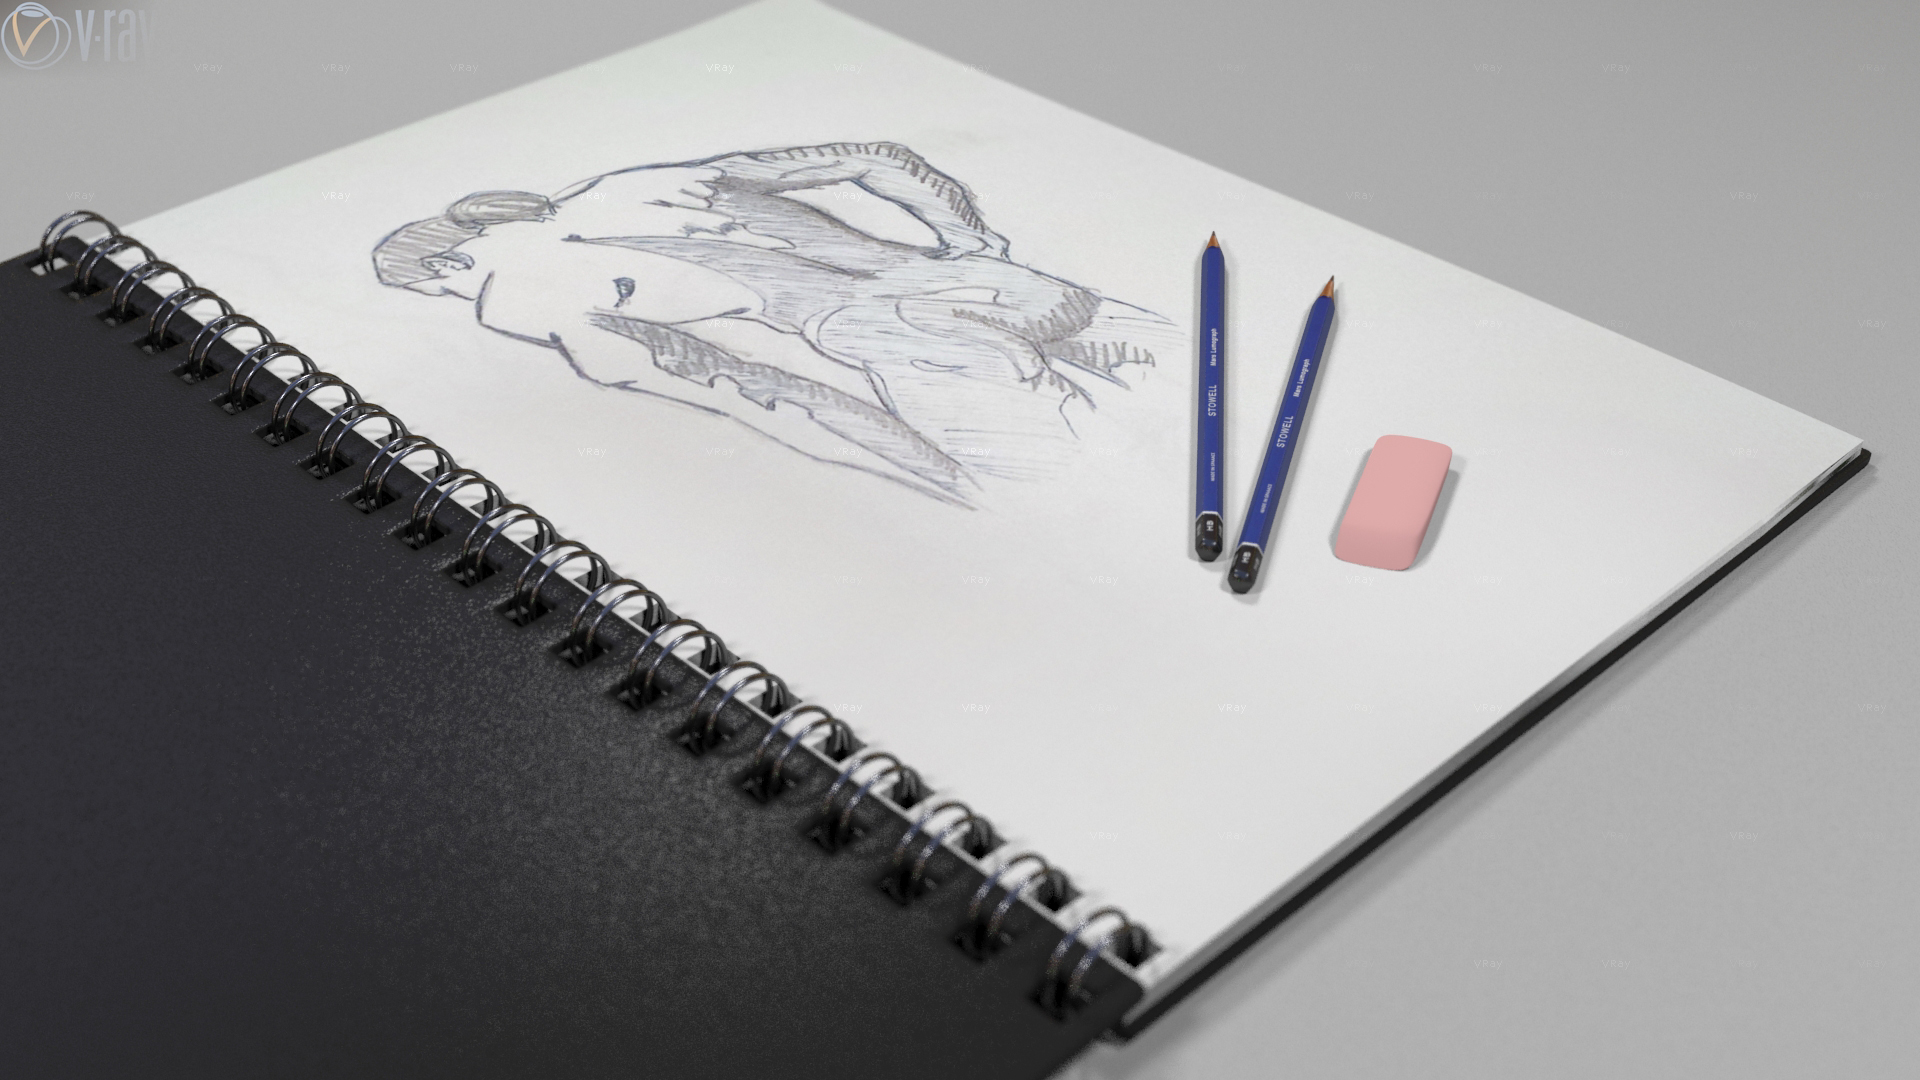 vray-life-drawing-pad